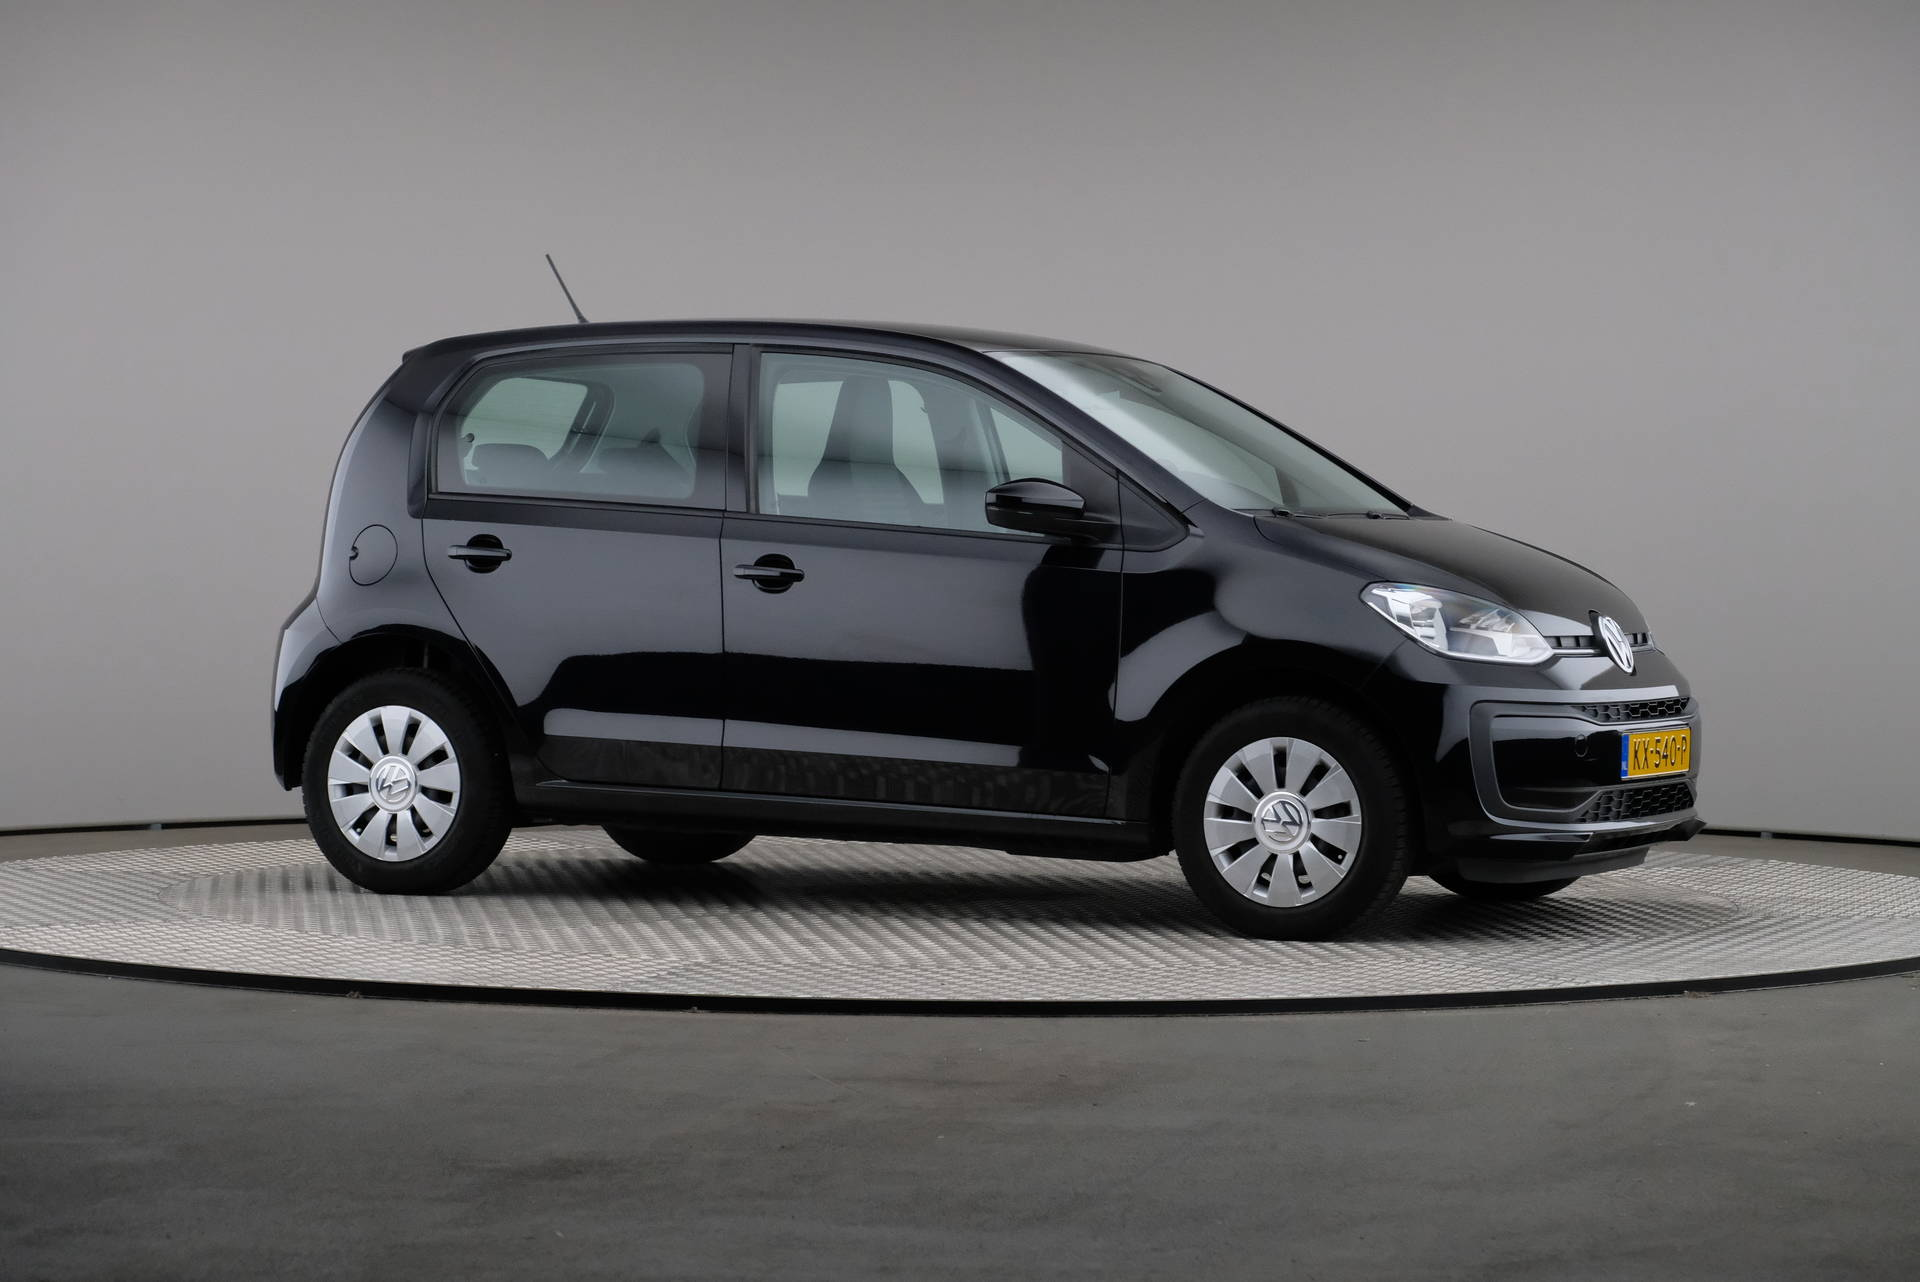 Volkswagen up! 1.0 44kW Move up! BlueMotion Technology, Airconditioning, 360-image26